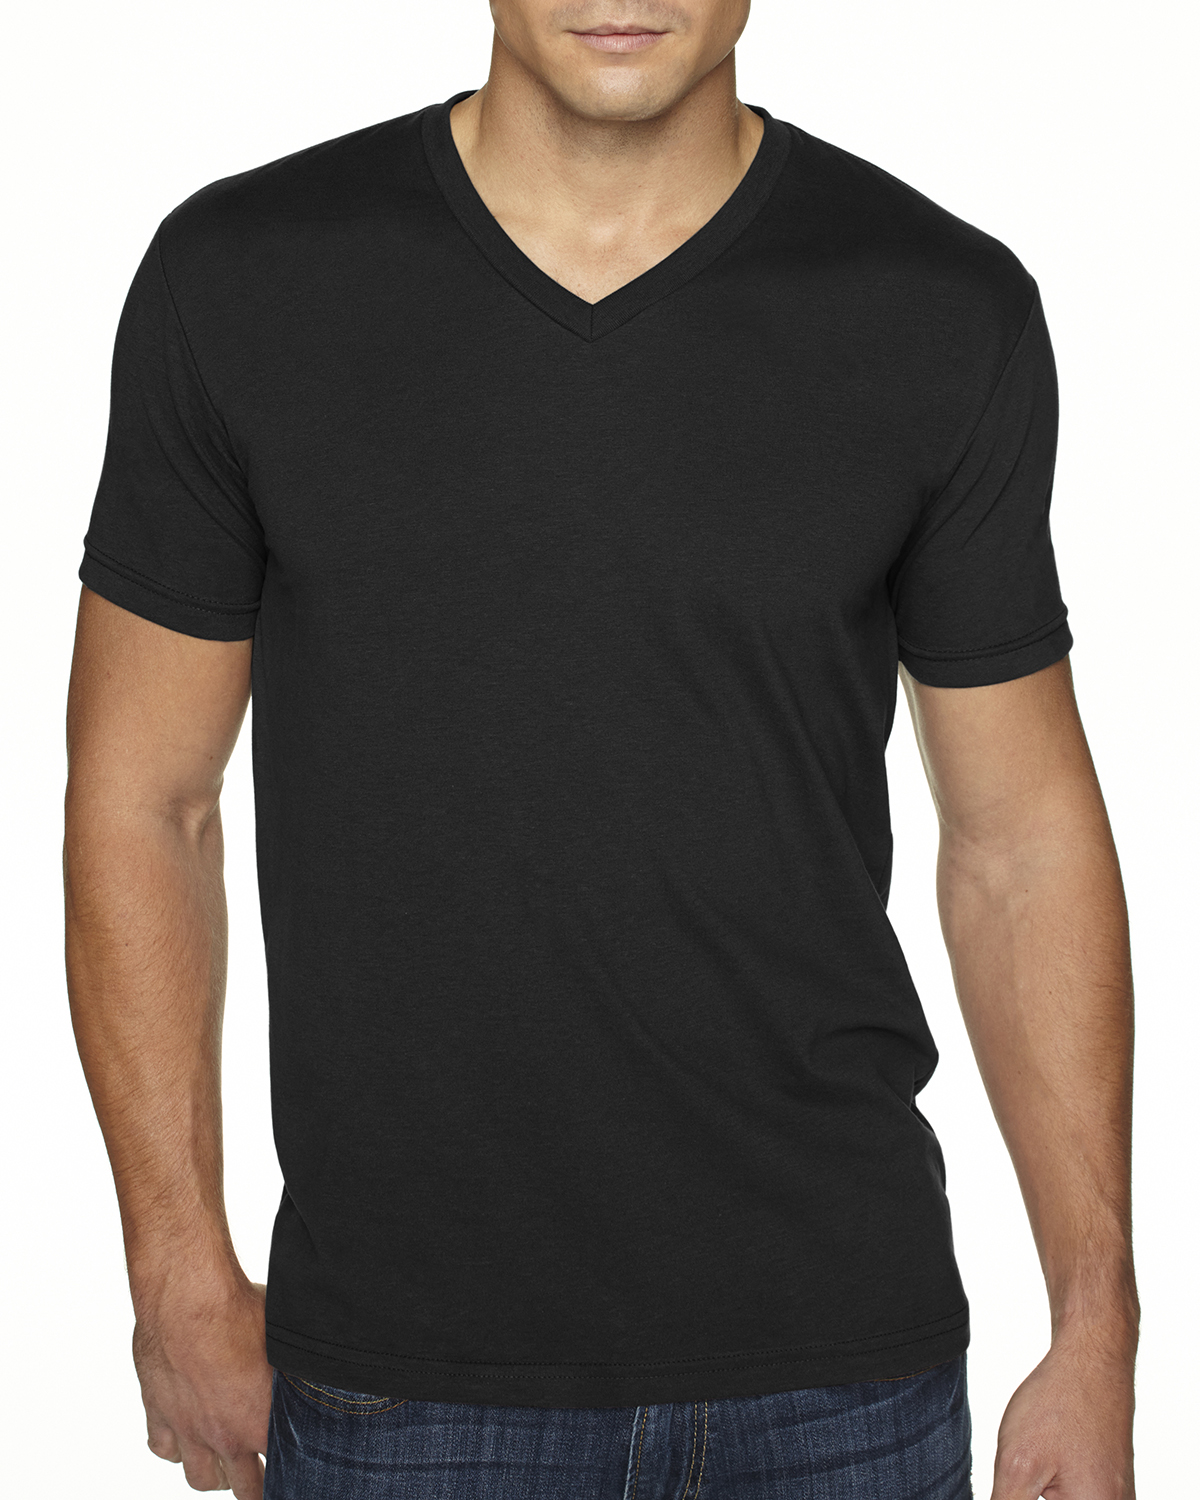 new next level men 39 s premium fit sueded v neck sizes s xl